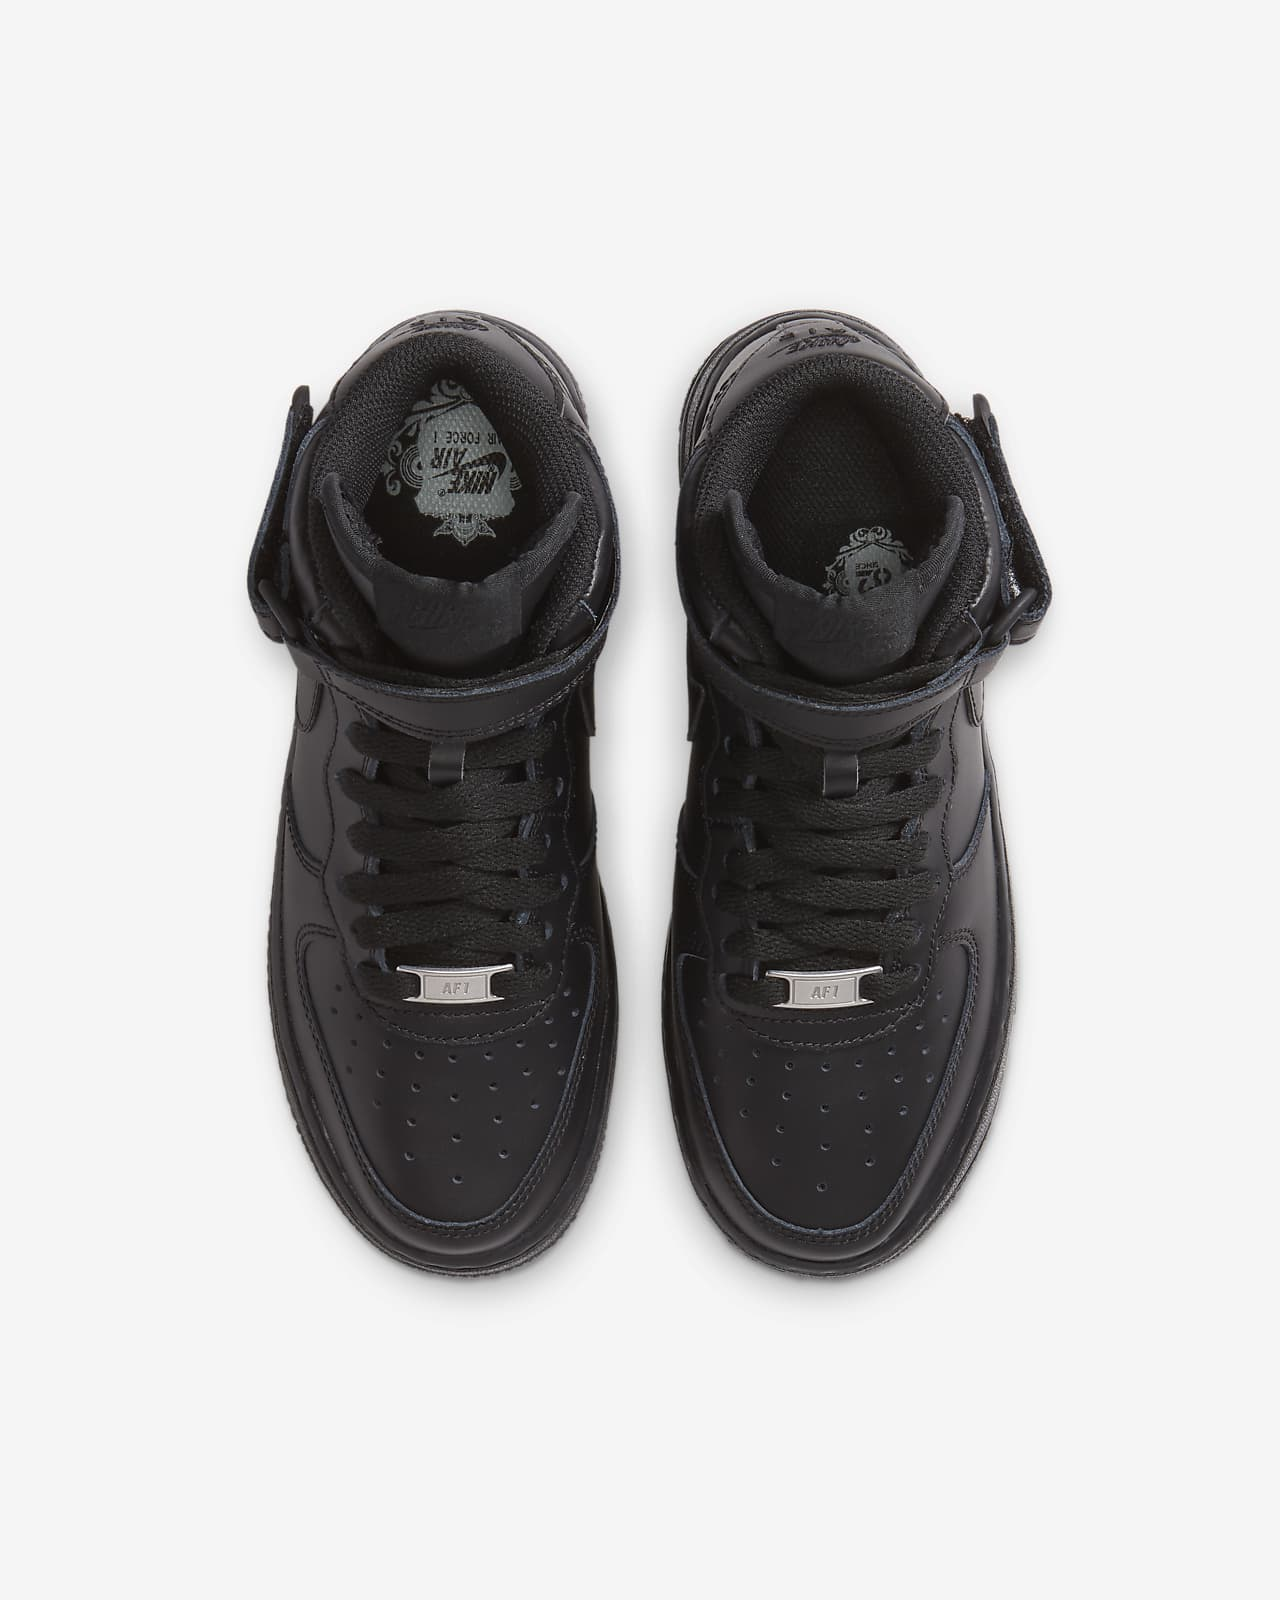 sneakers homme nike air force montante